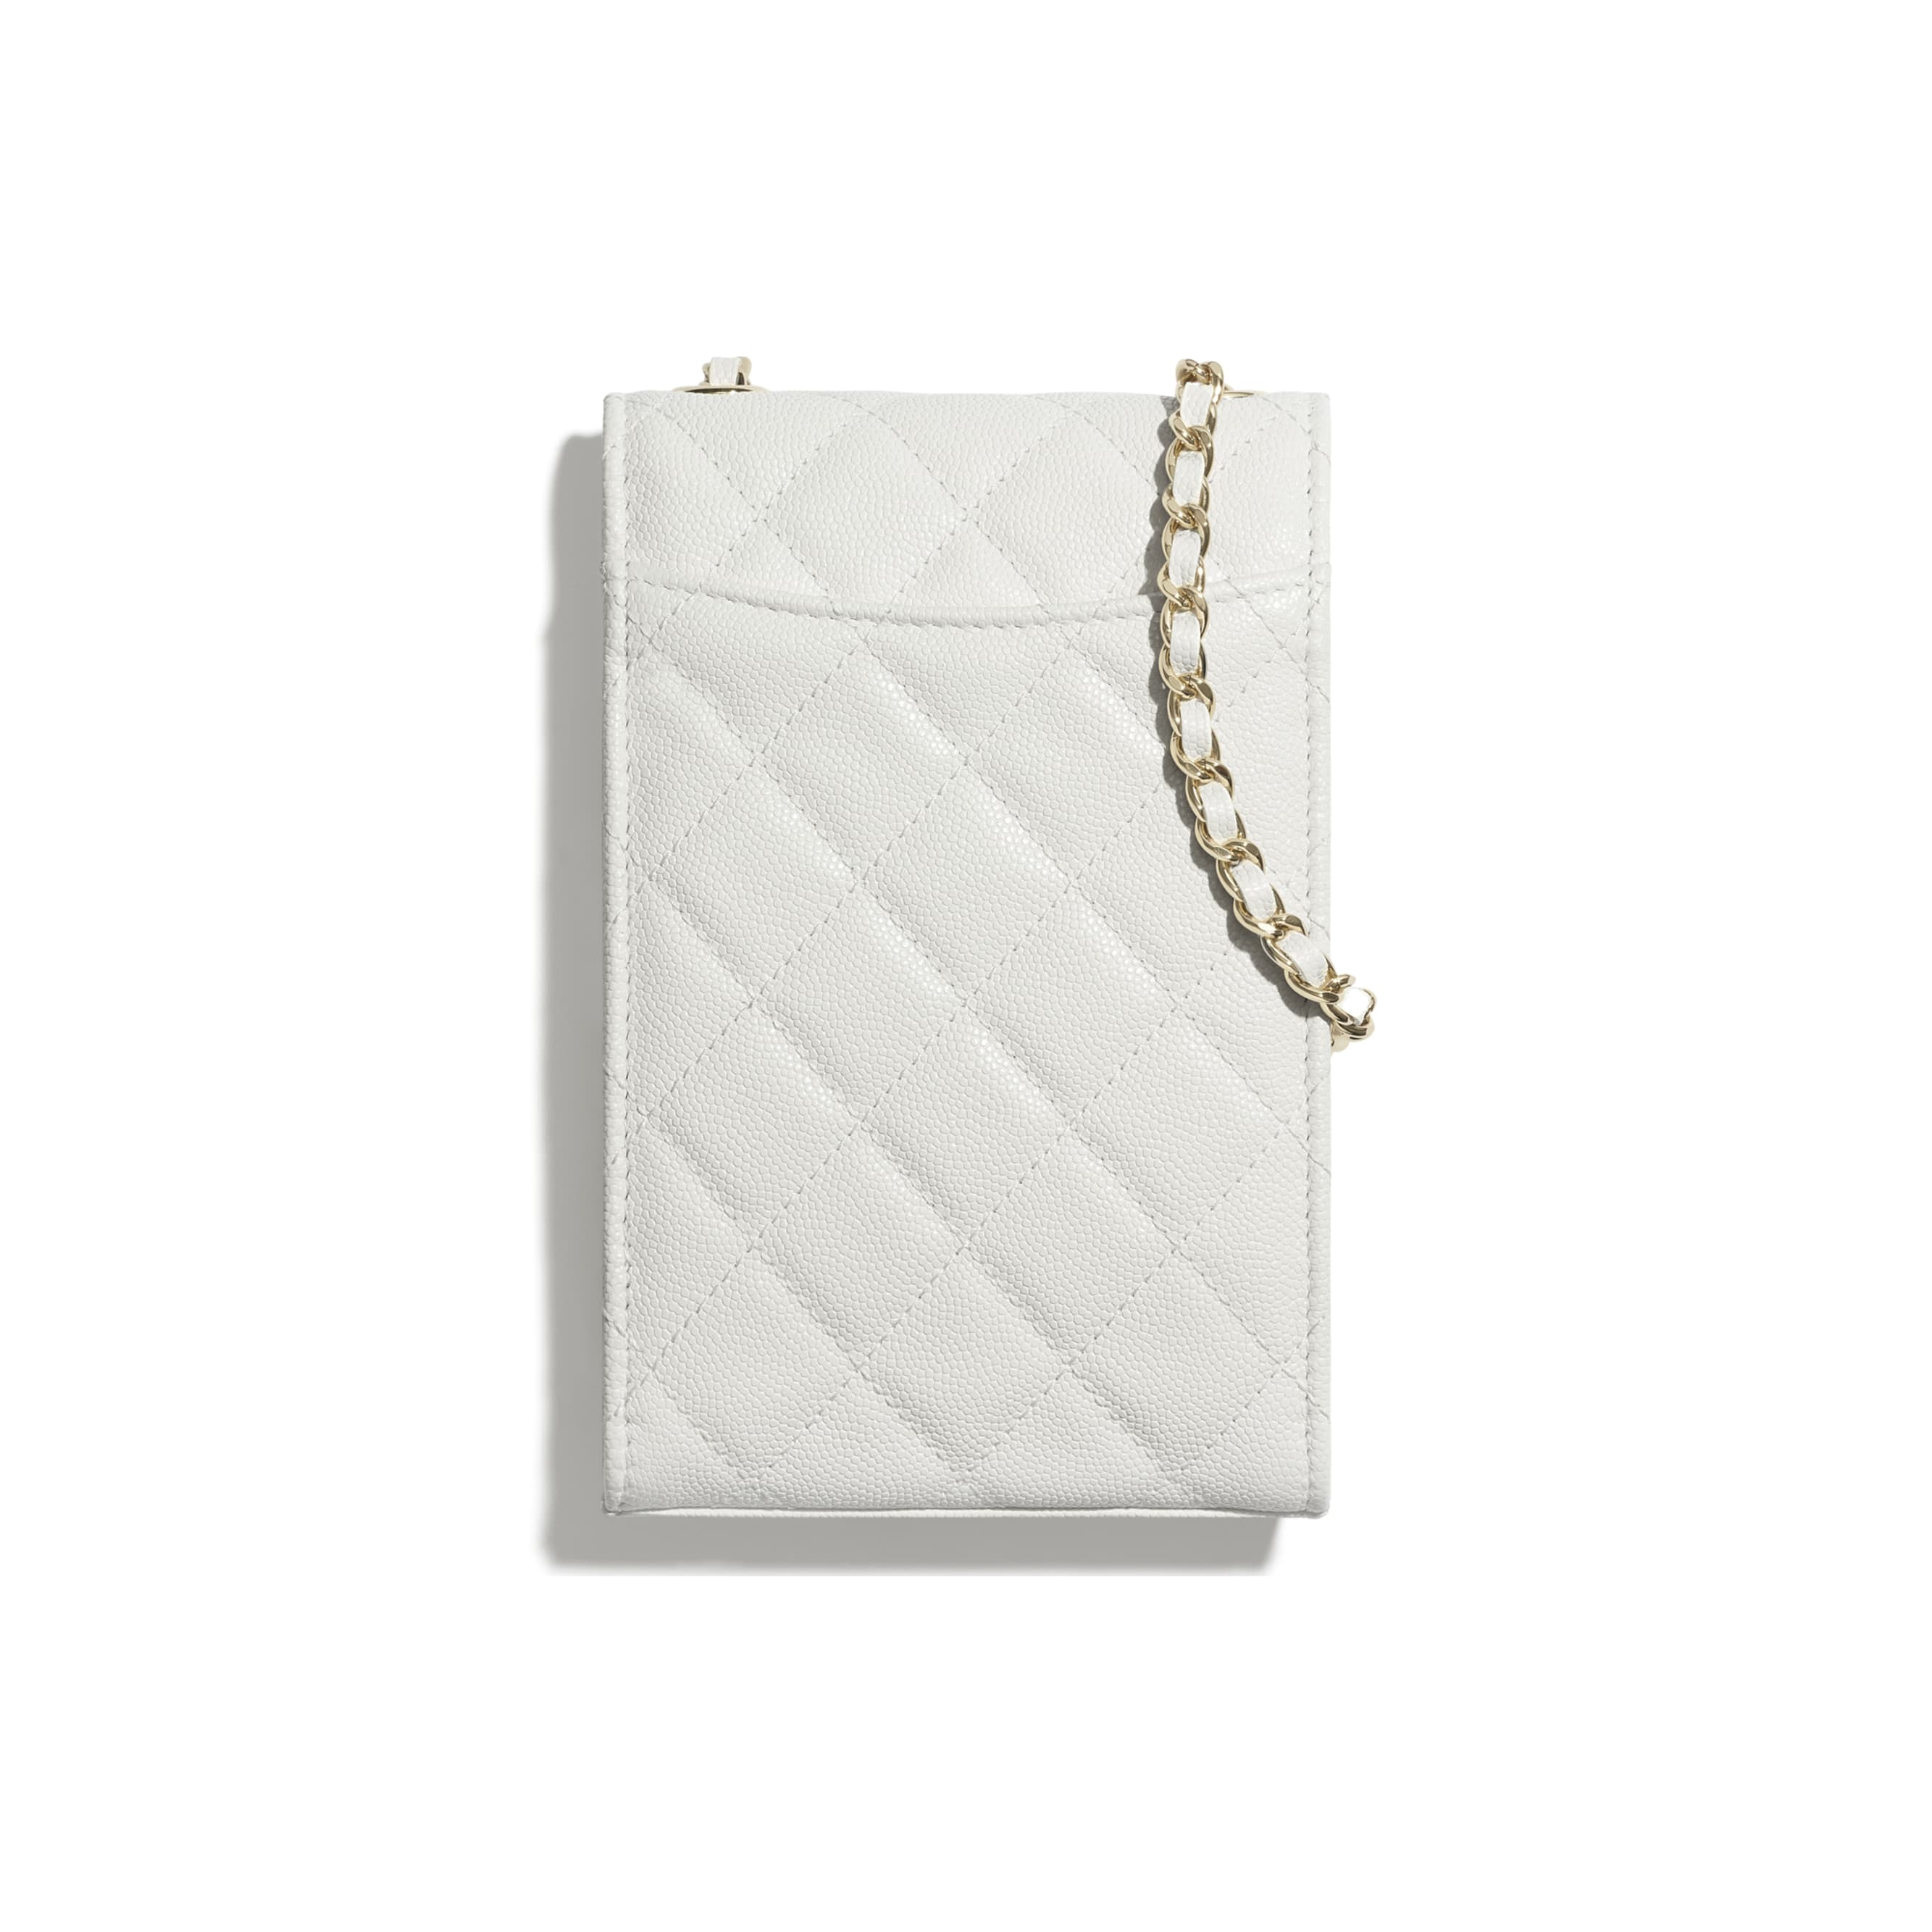 Classic Clutch With Chain - White - Grained Shiny Calfskin & Gold-Tone Metal - CHANEL - Alternative view - see standard sized version